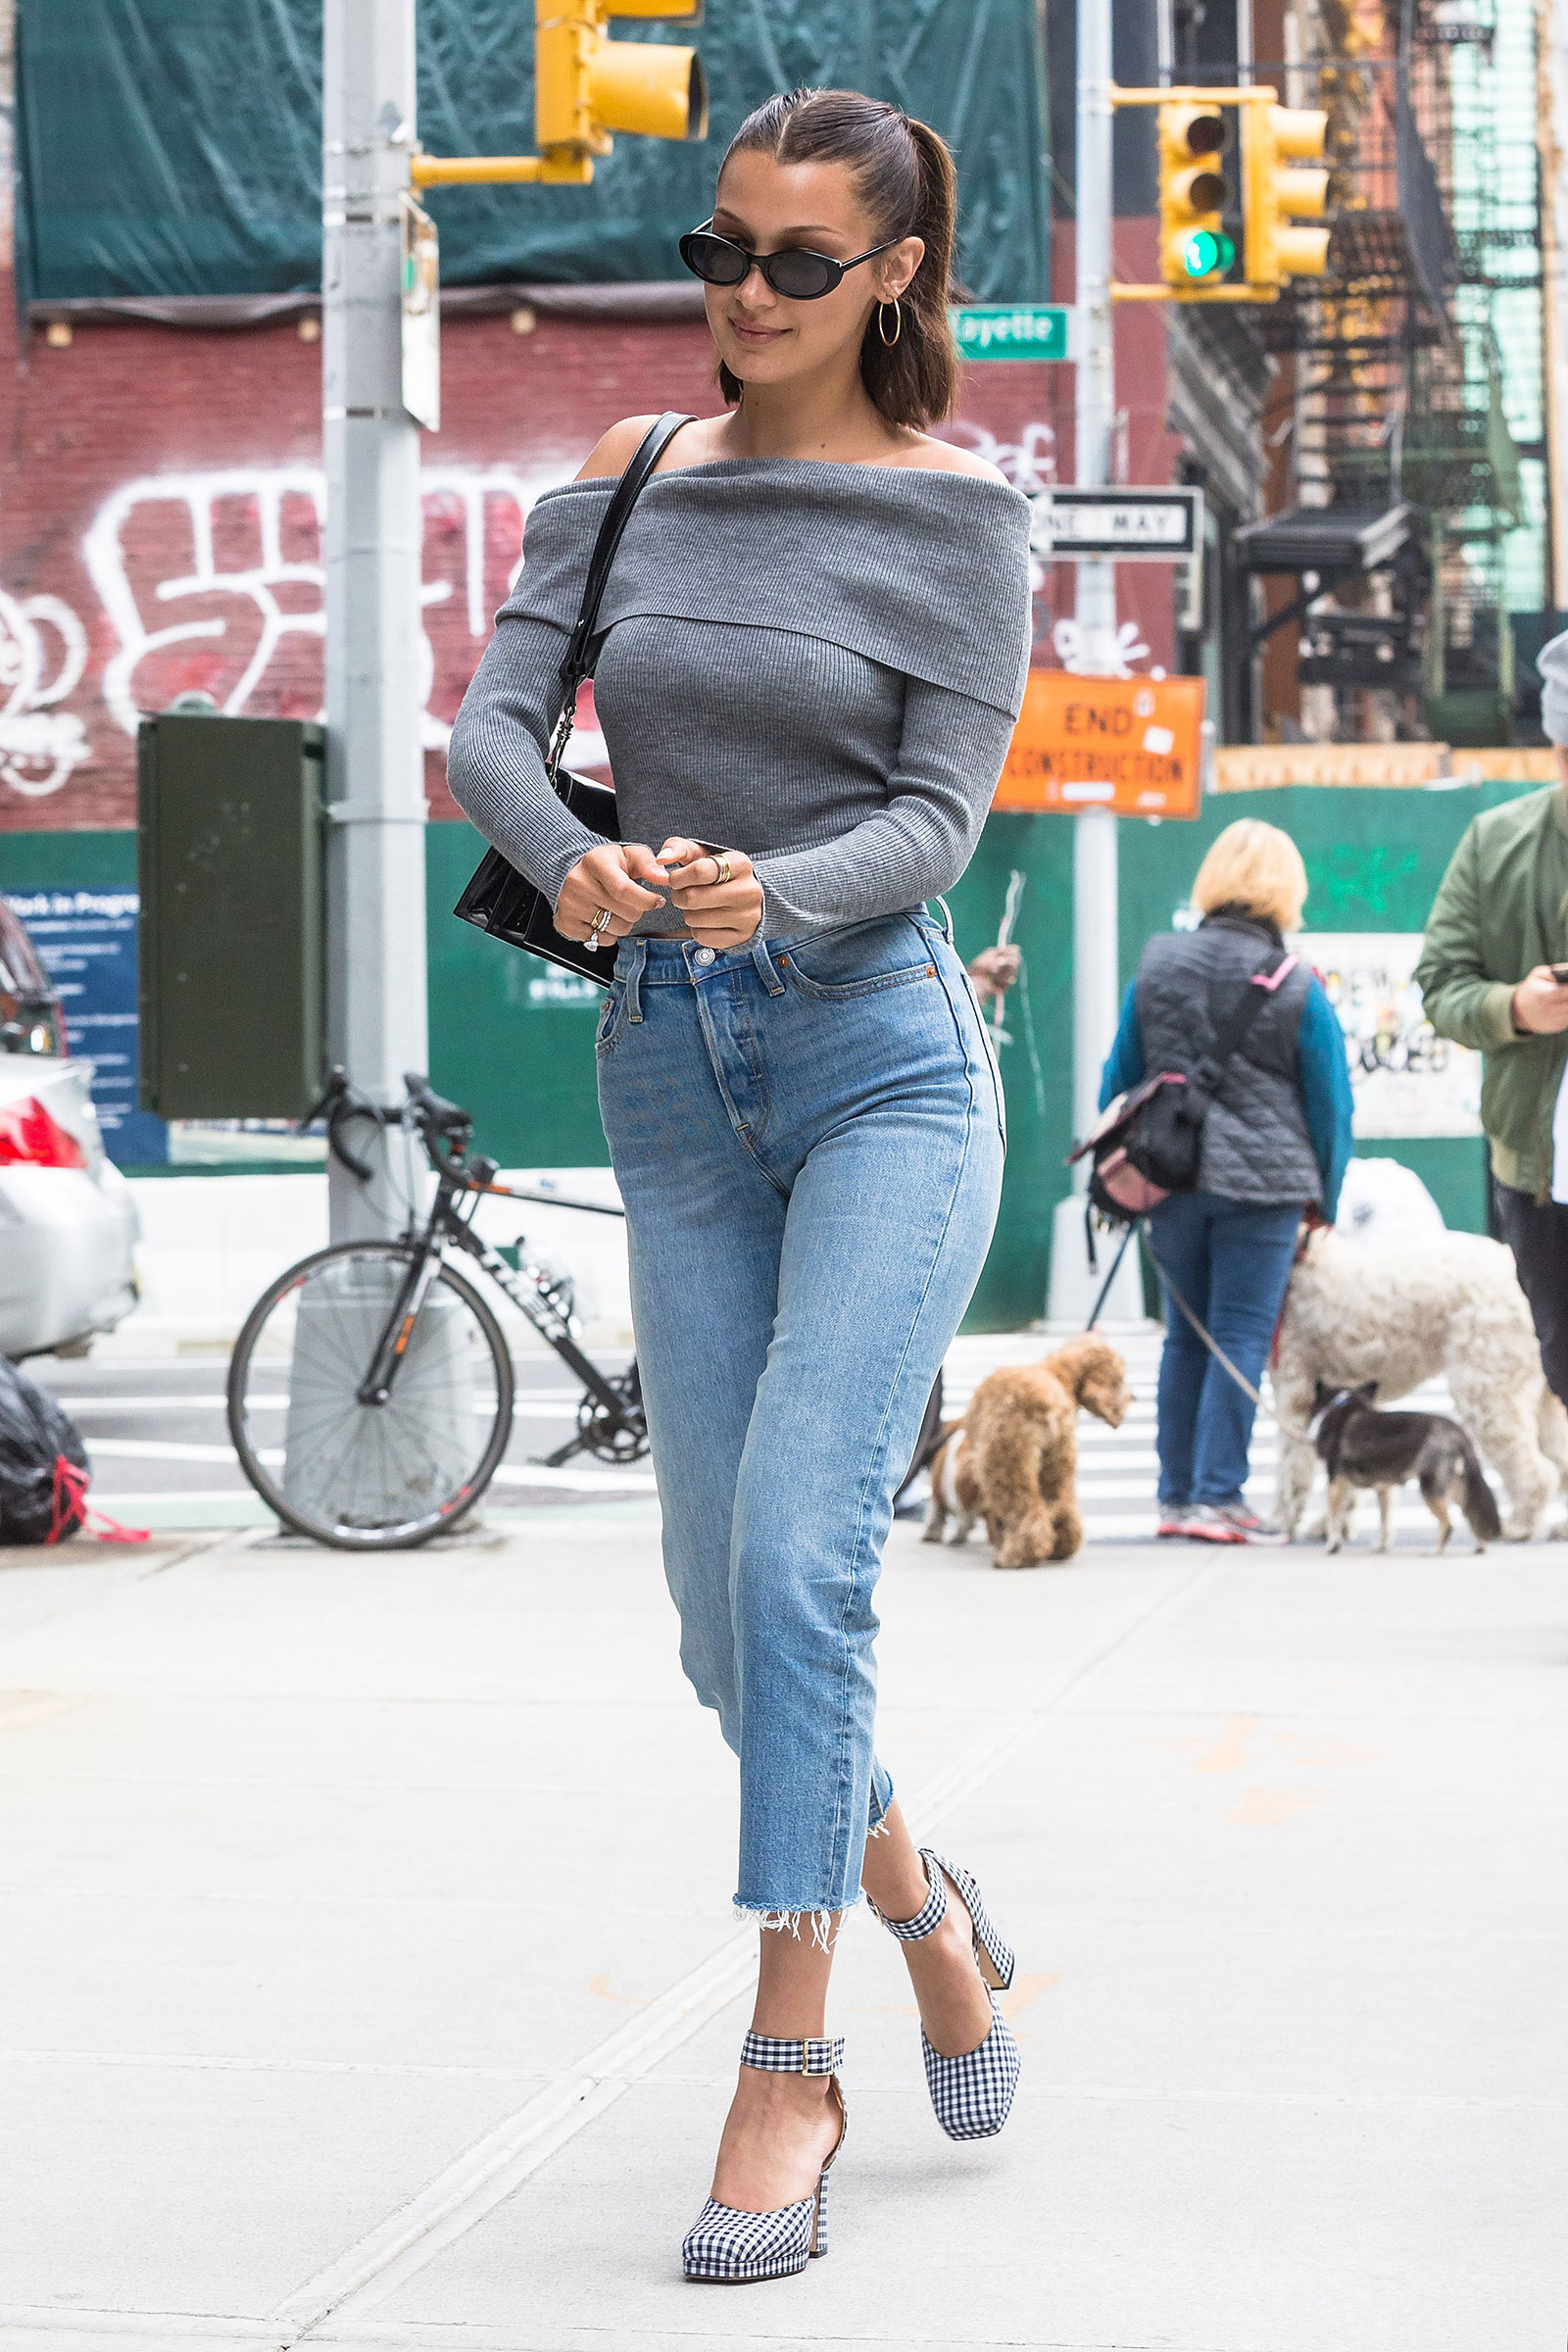 Bella Hadid looks cute and casual in a gray off the shoulder sweater, high waist jeans and gingham platform pumps.